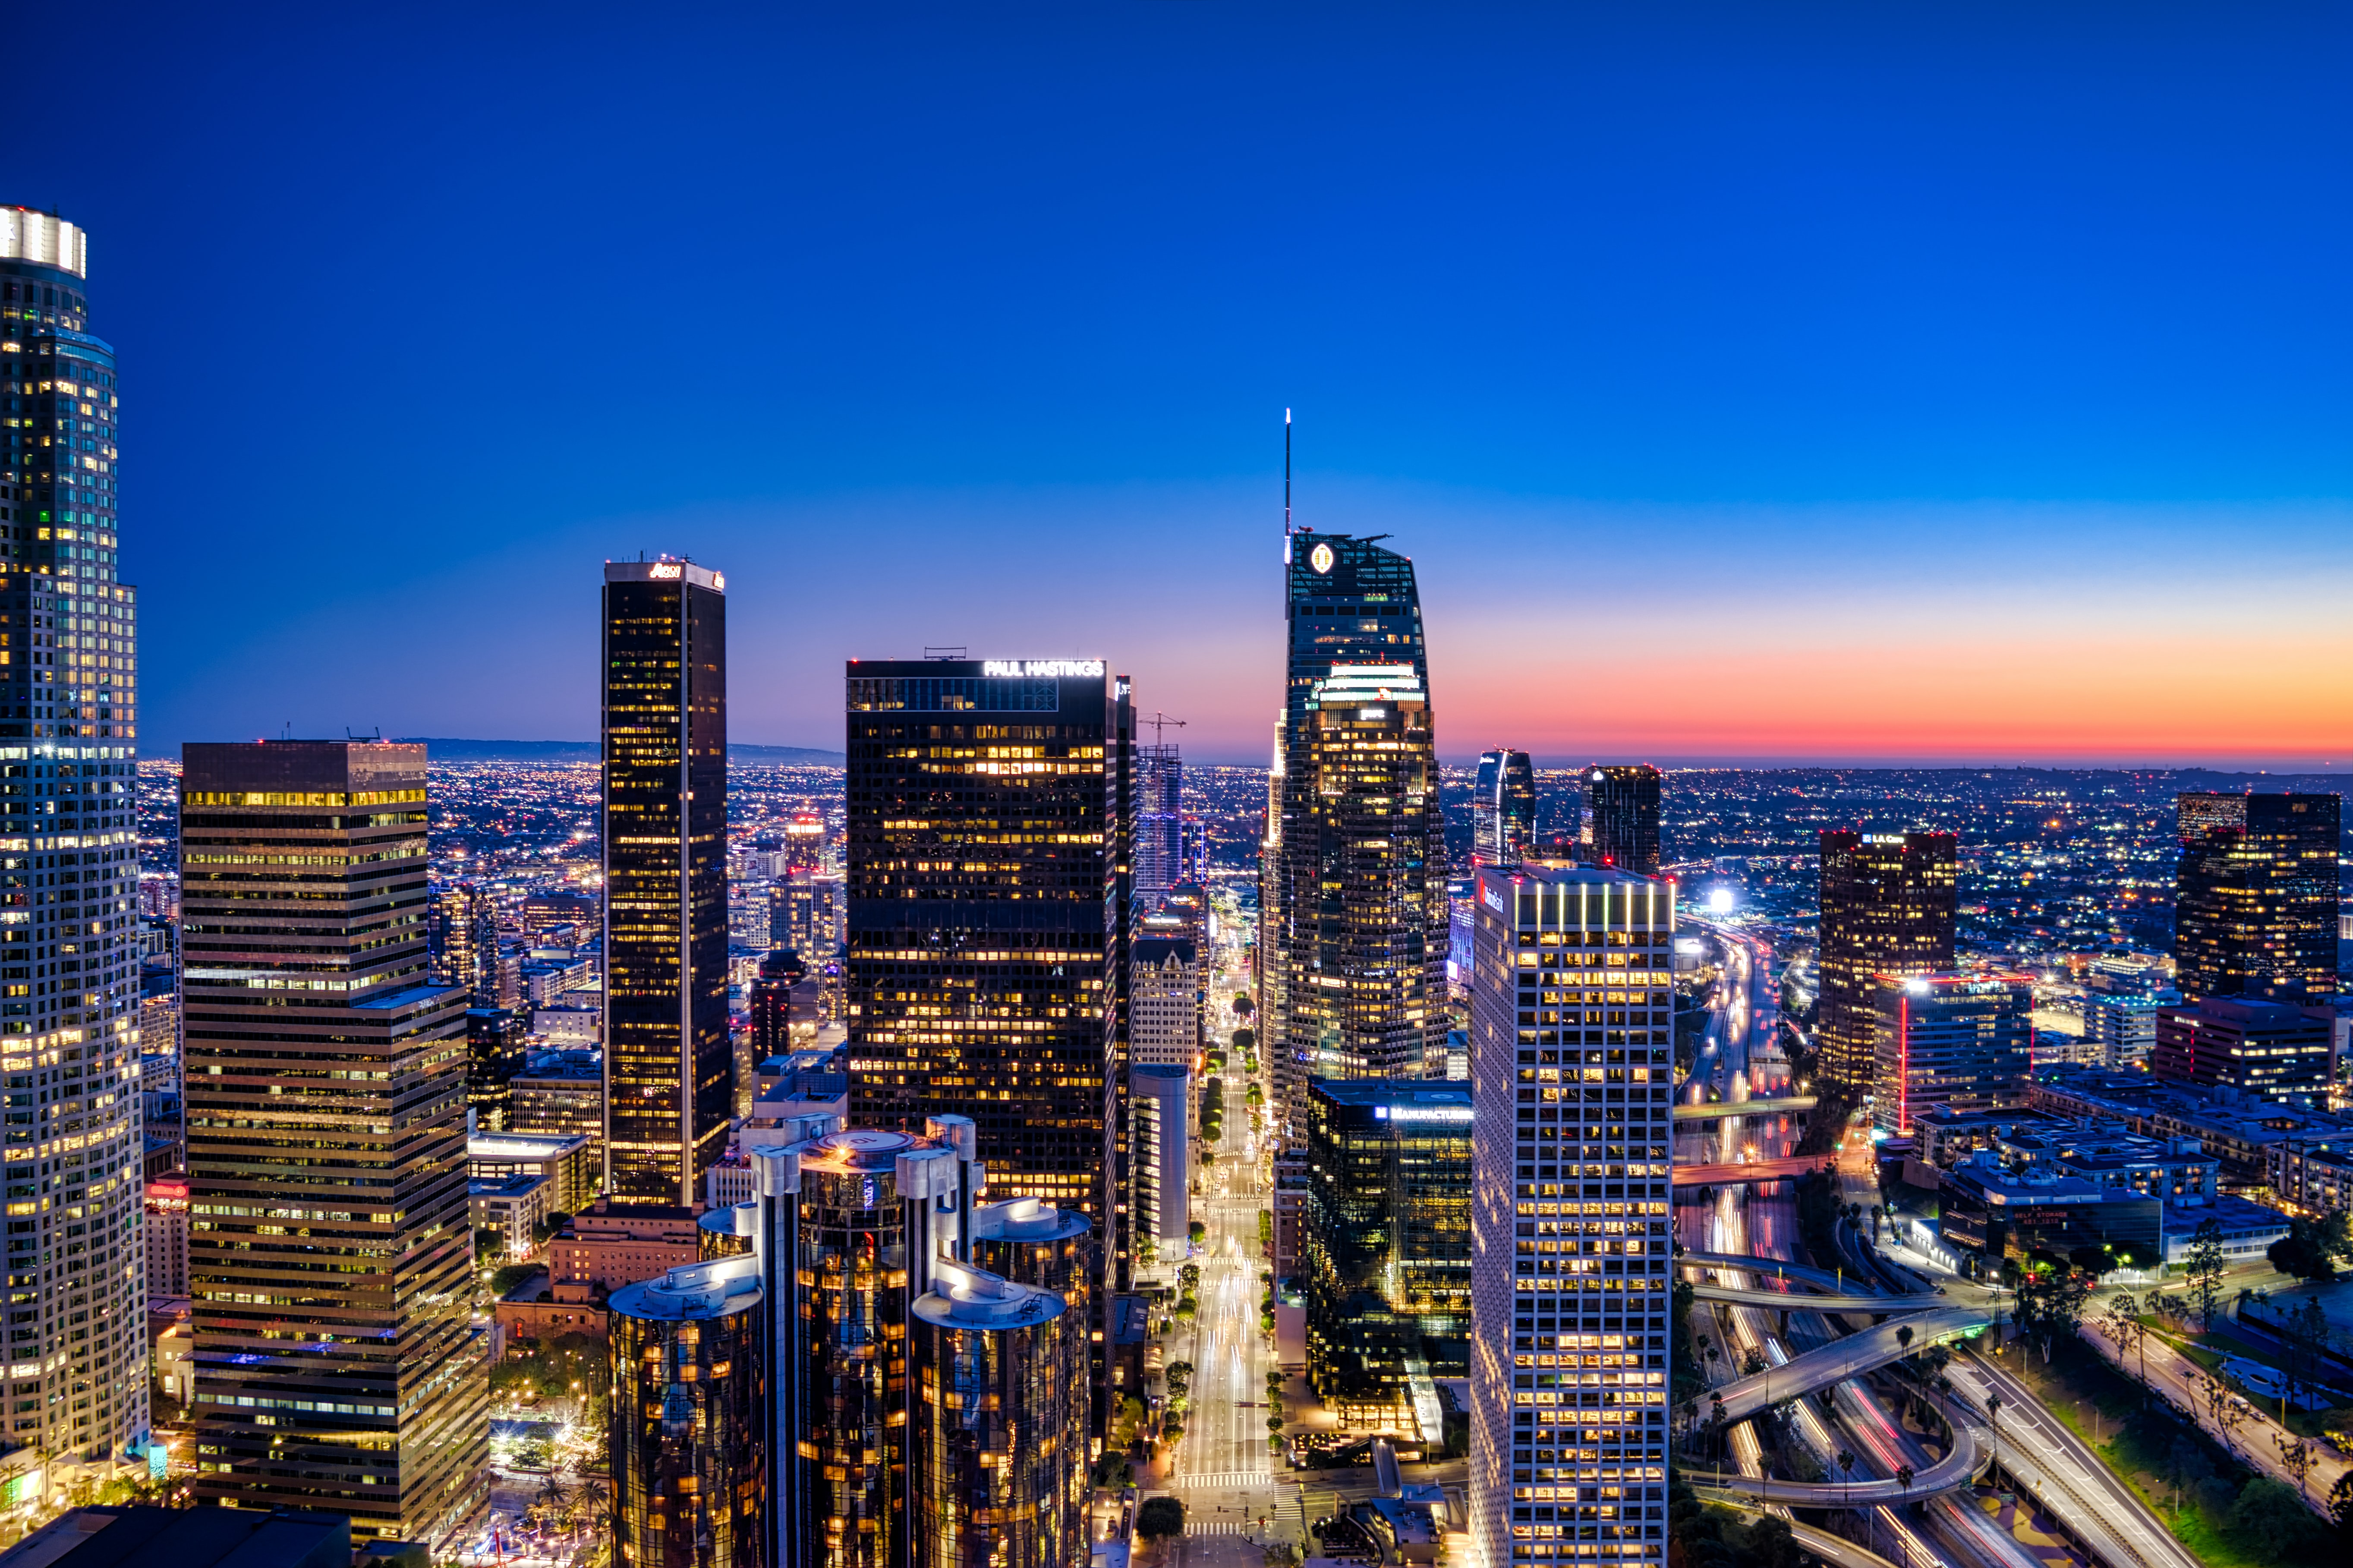 Popular Night City images for mobile phone